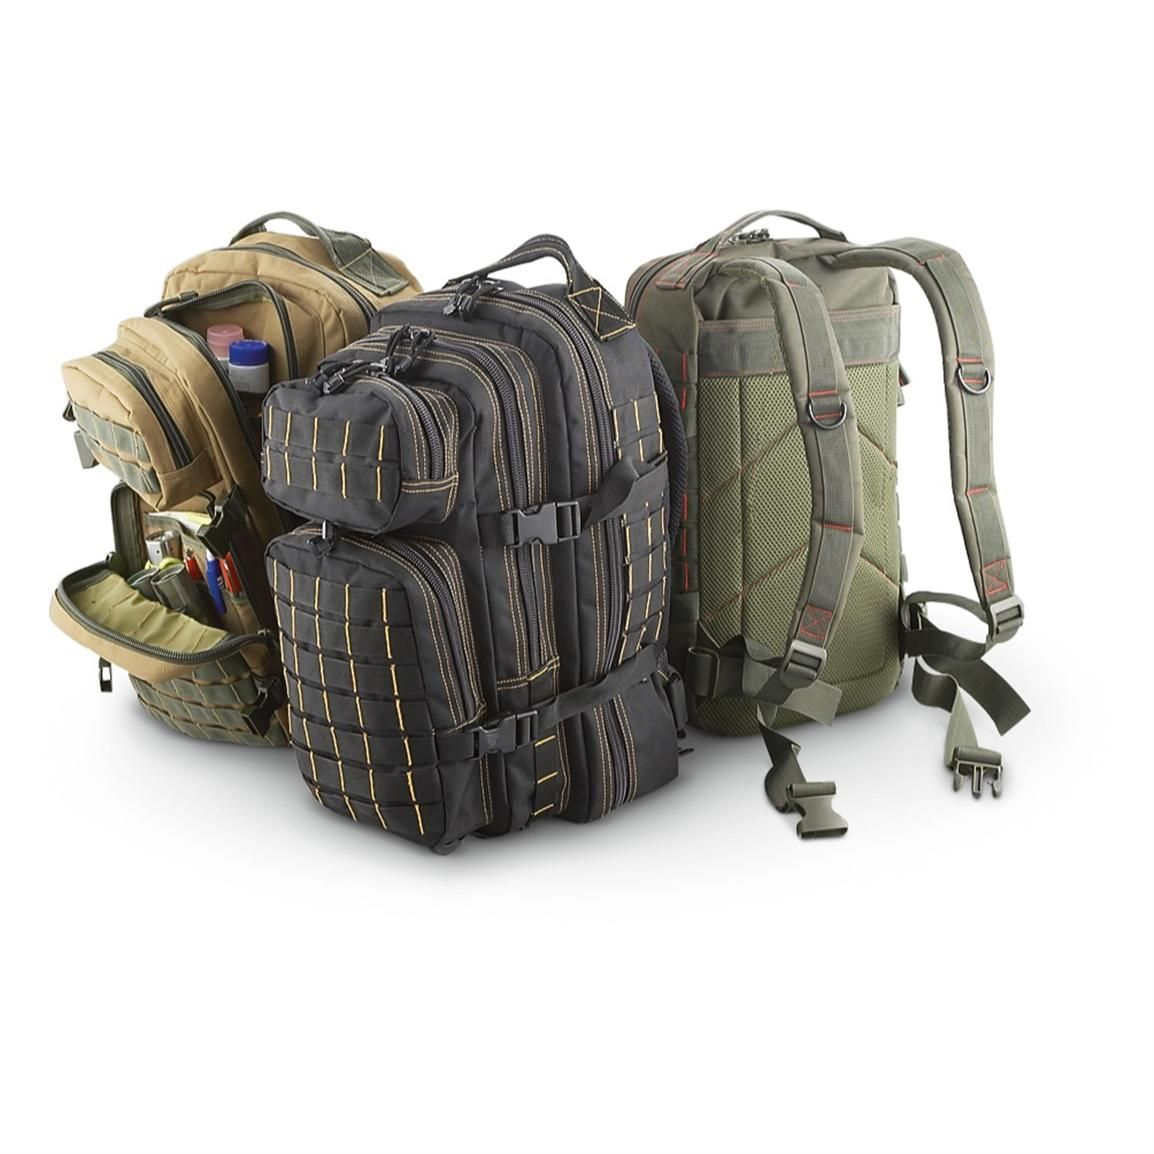 surplus military gear tactical pack assault rock sportsman enhanced guide packs survival kit bag sportsmansguide apocalypse camping equipment outdoor bags